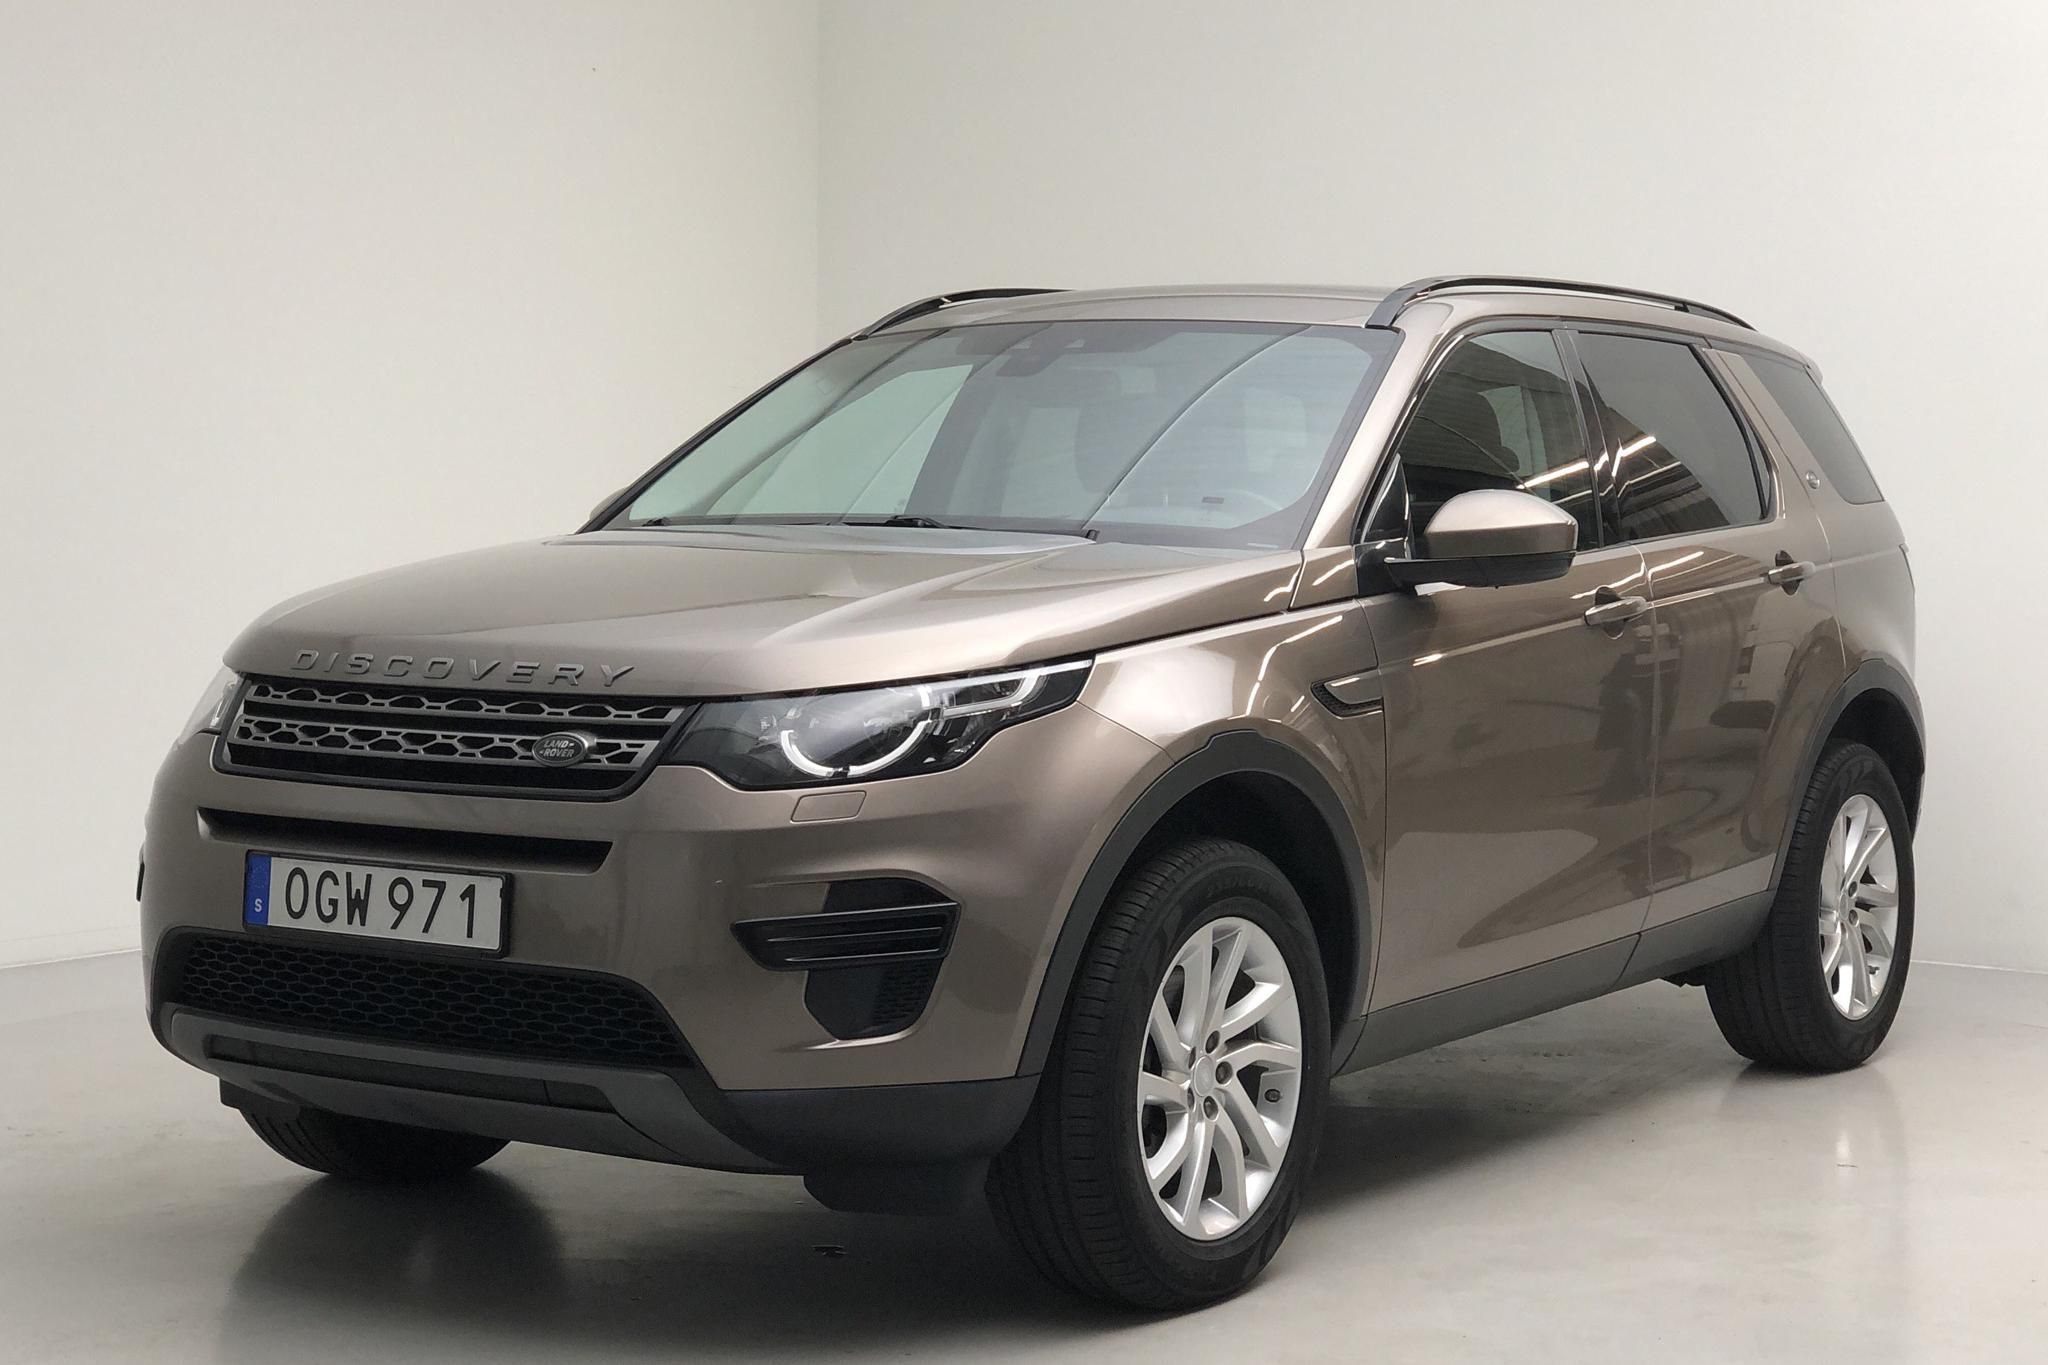 Land Rover Discovery Sport 2.0 TD4 AWD (180hk) - 93 030 km - Automatic - gray - 2017